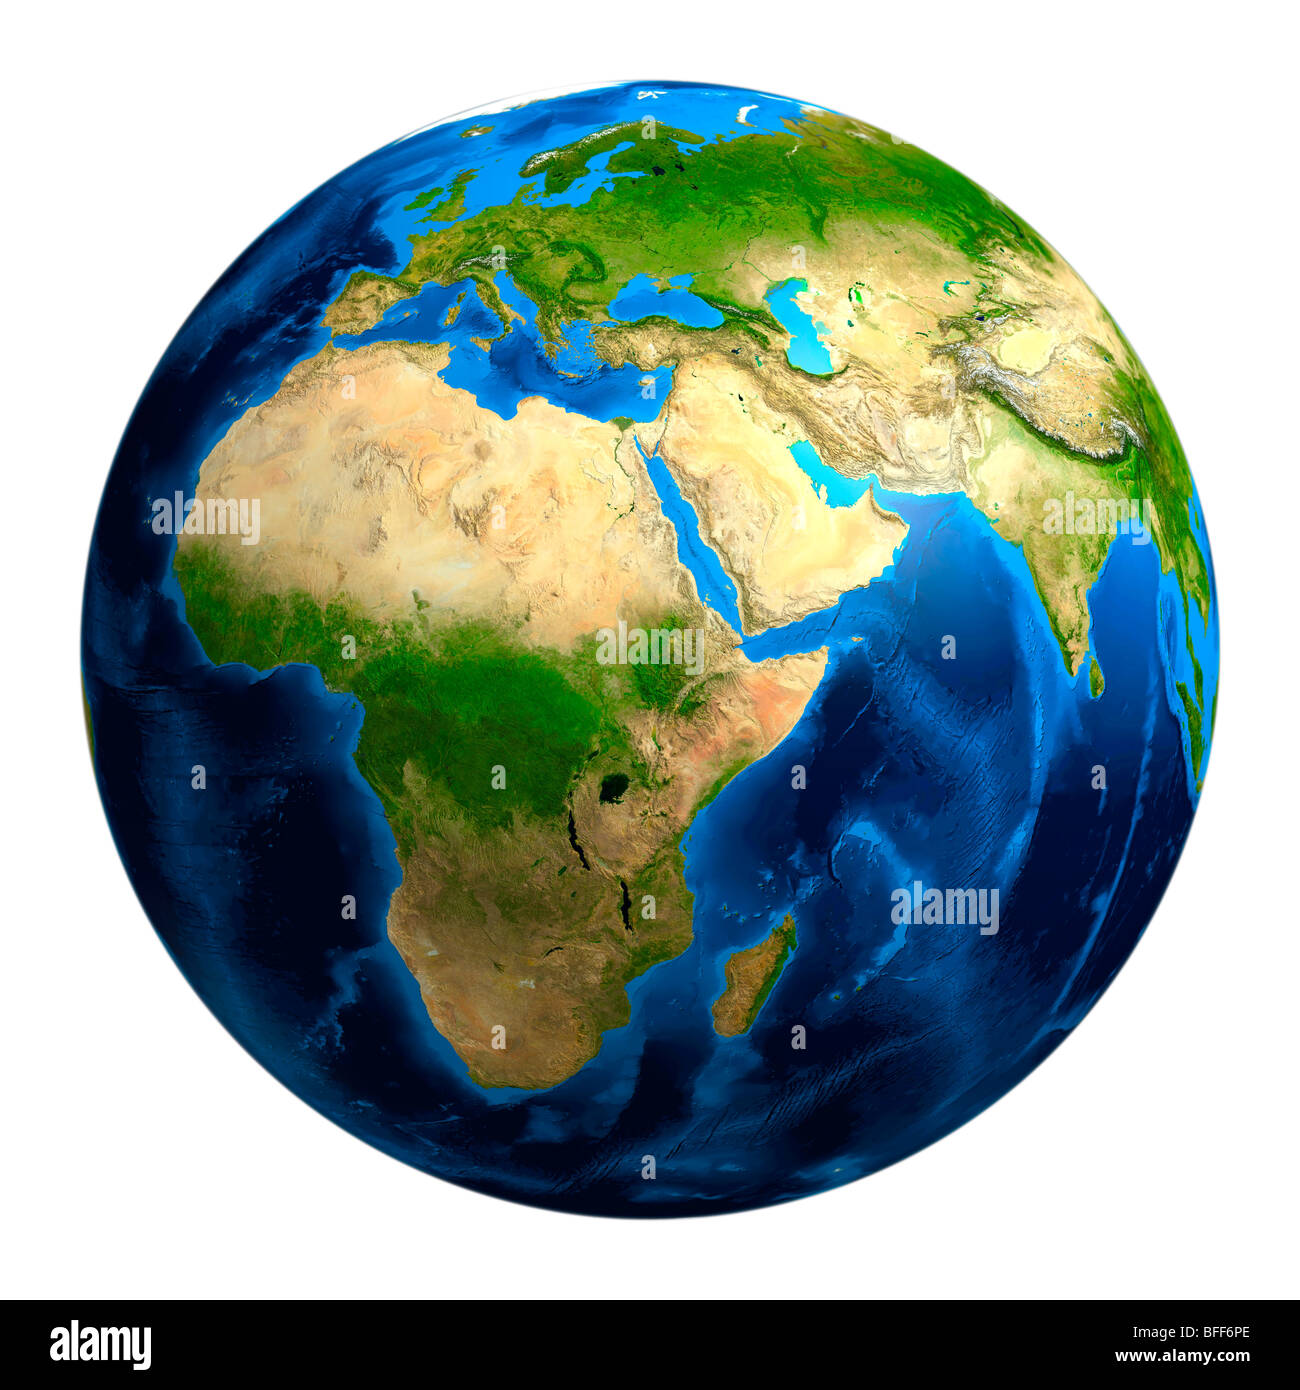 View of the Earth globe from space showing African, European and Asian continents - Stock Image